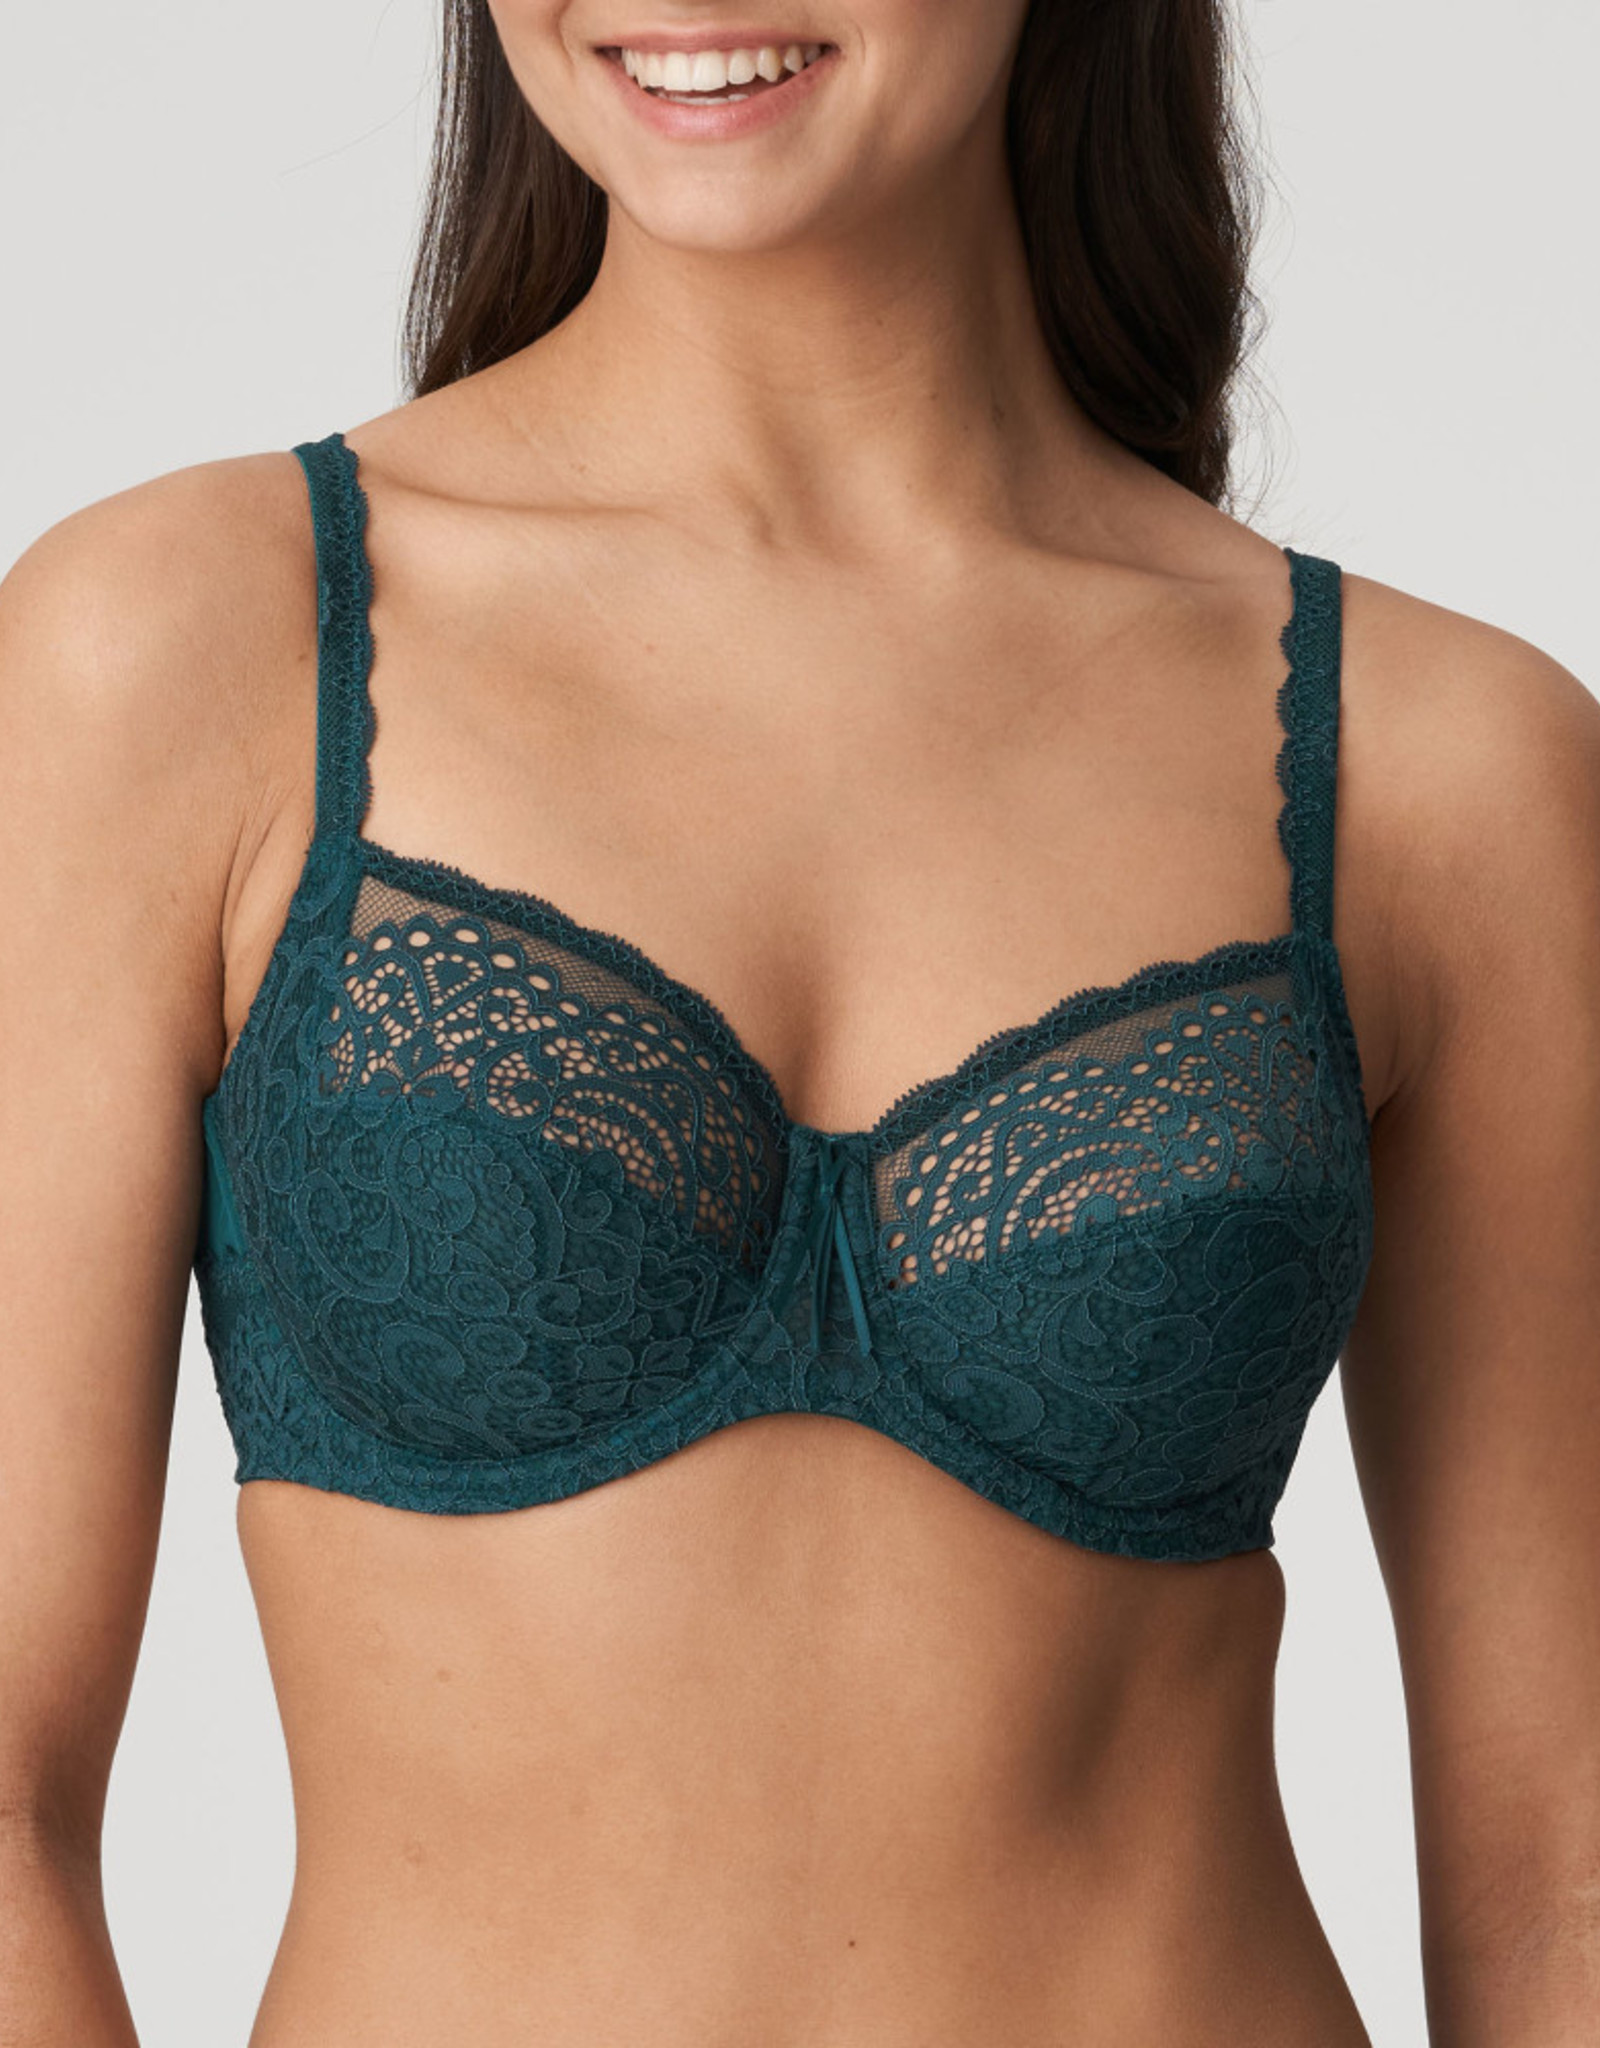 Prima Donna I Do Full Cup Wire Bra